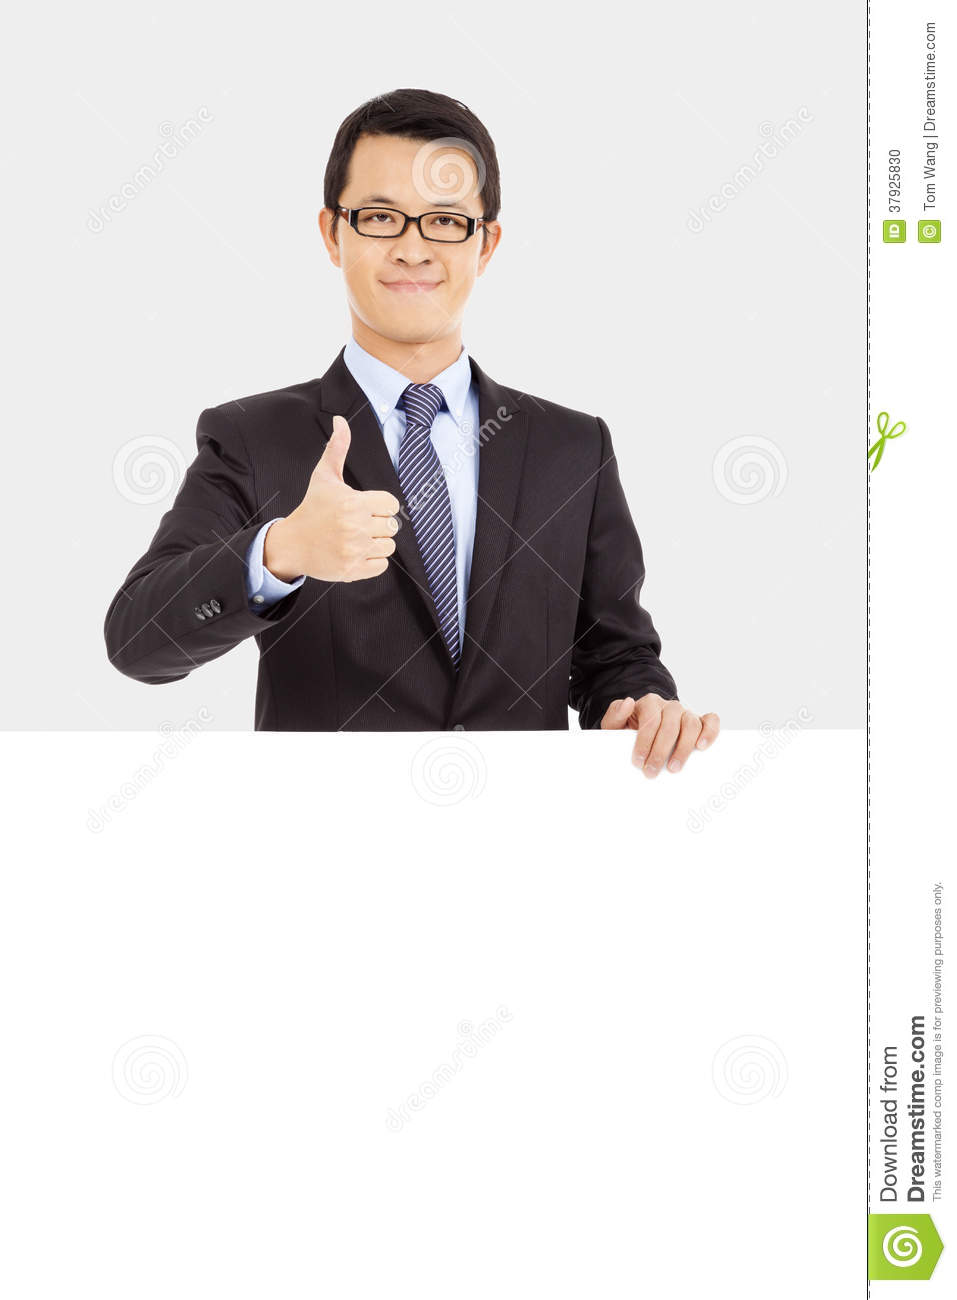 Businessman holding white board and thumb up